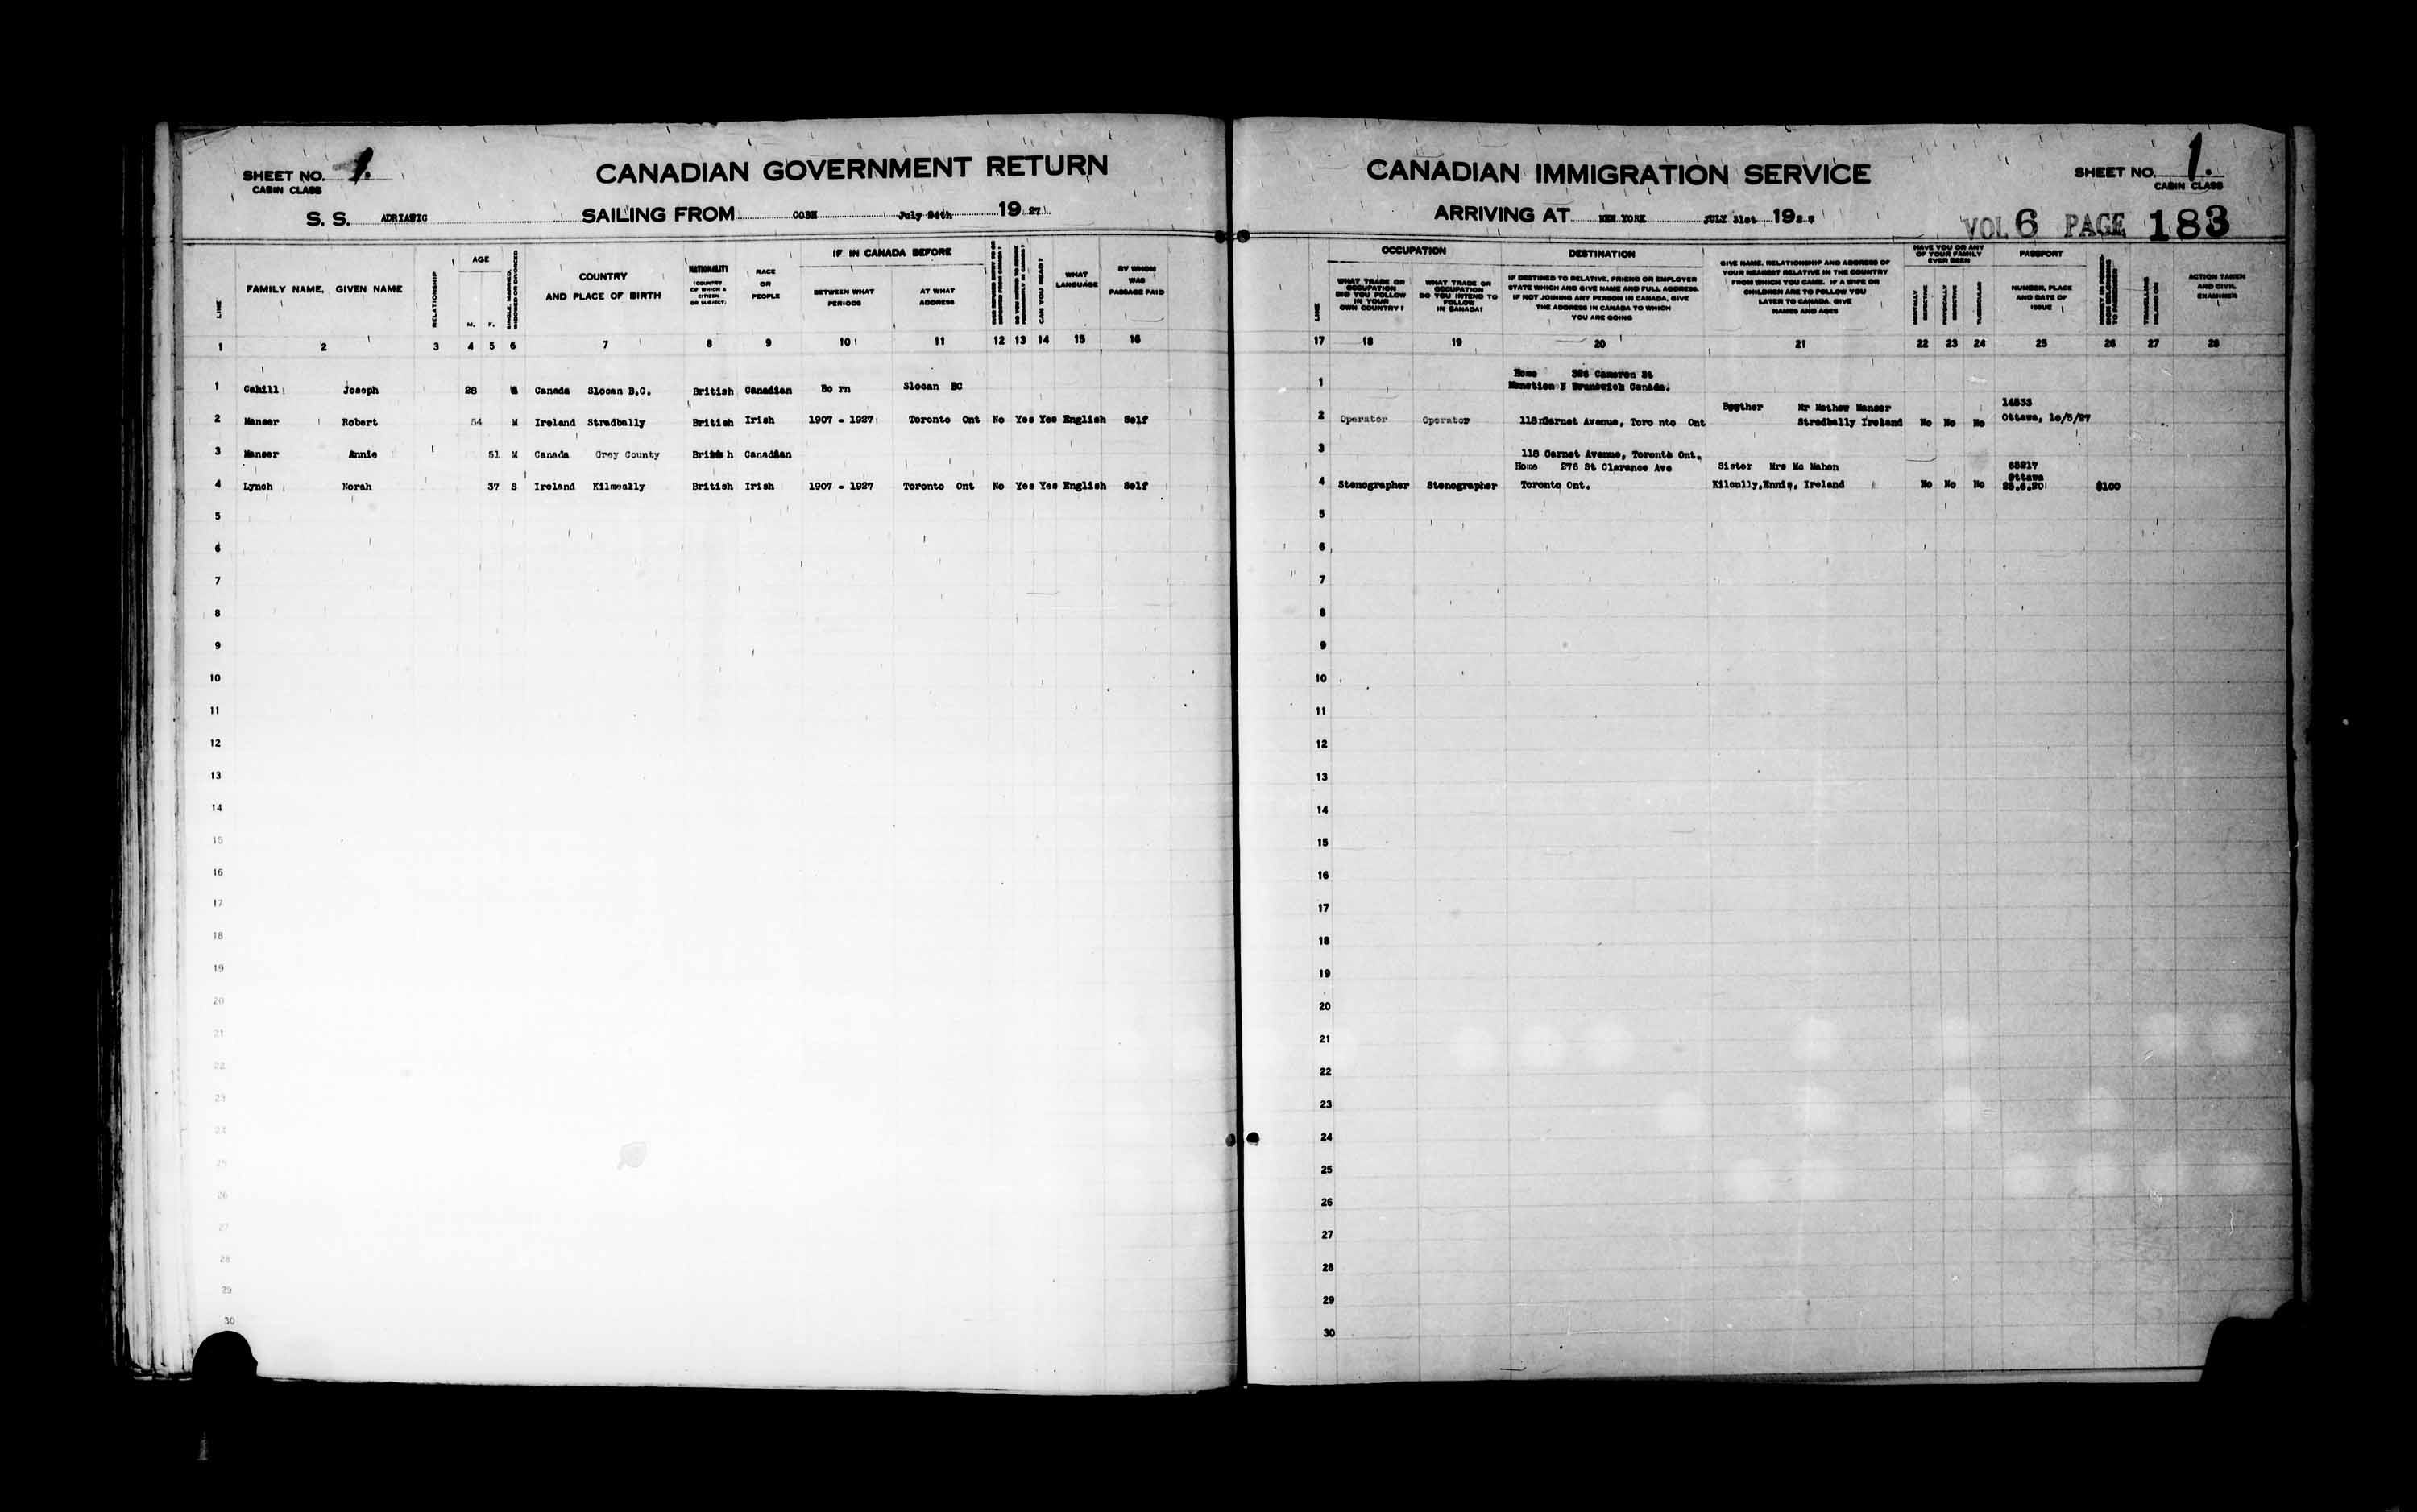 Title: Passenger Lists: New York (1925-1935) - Mikan Number: 161343 - Microform: t-14930